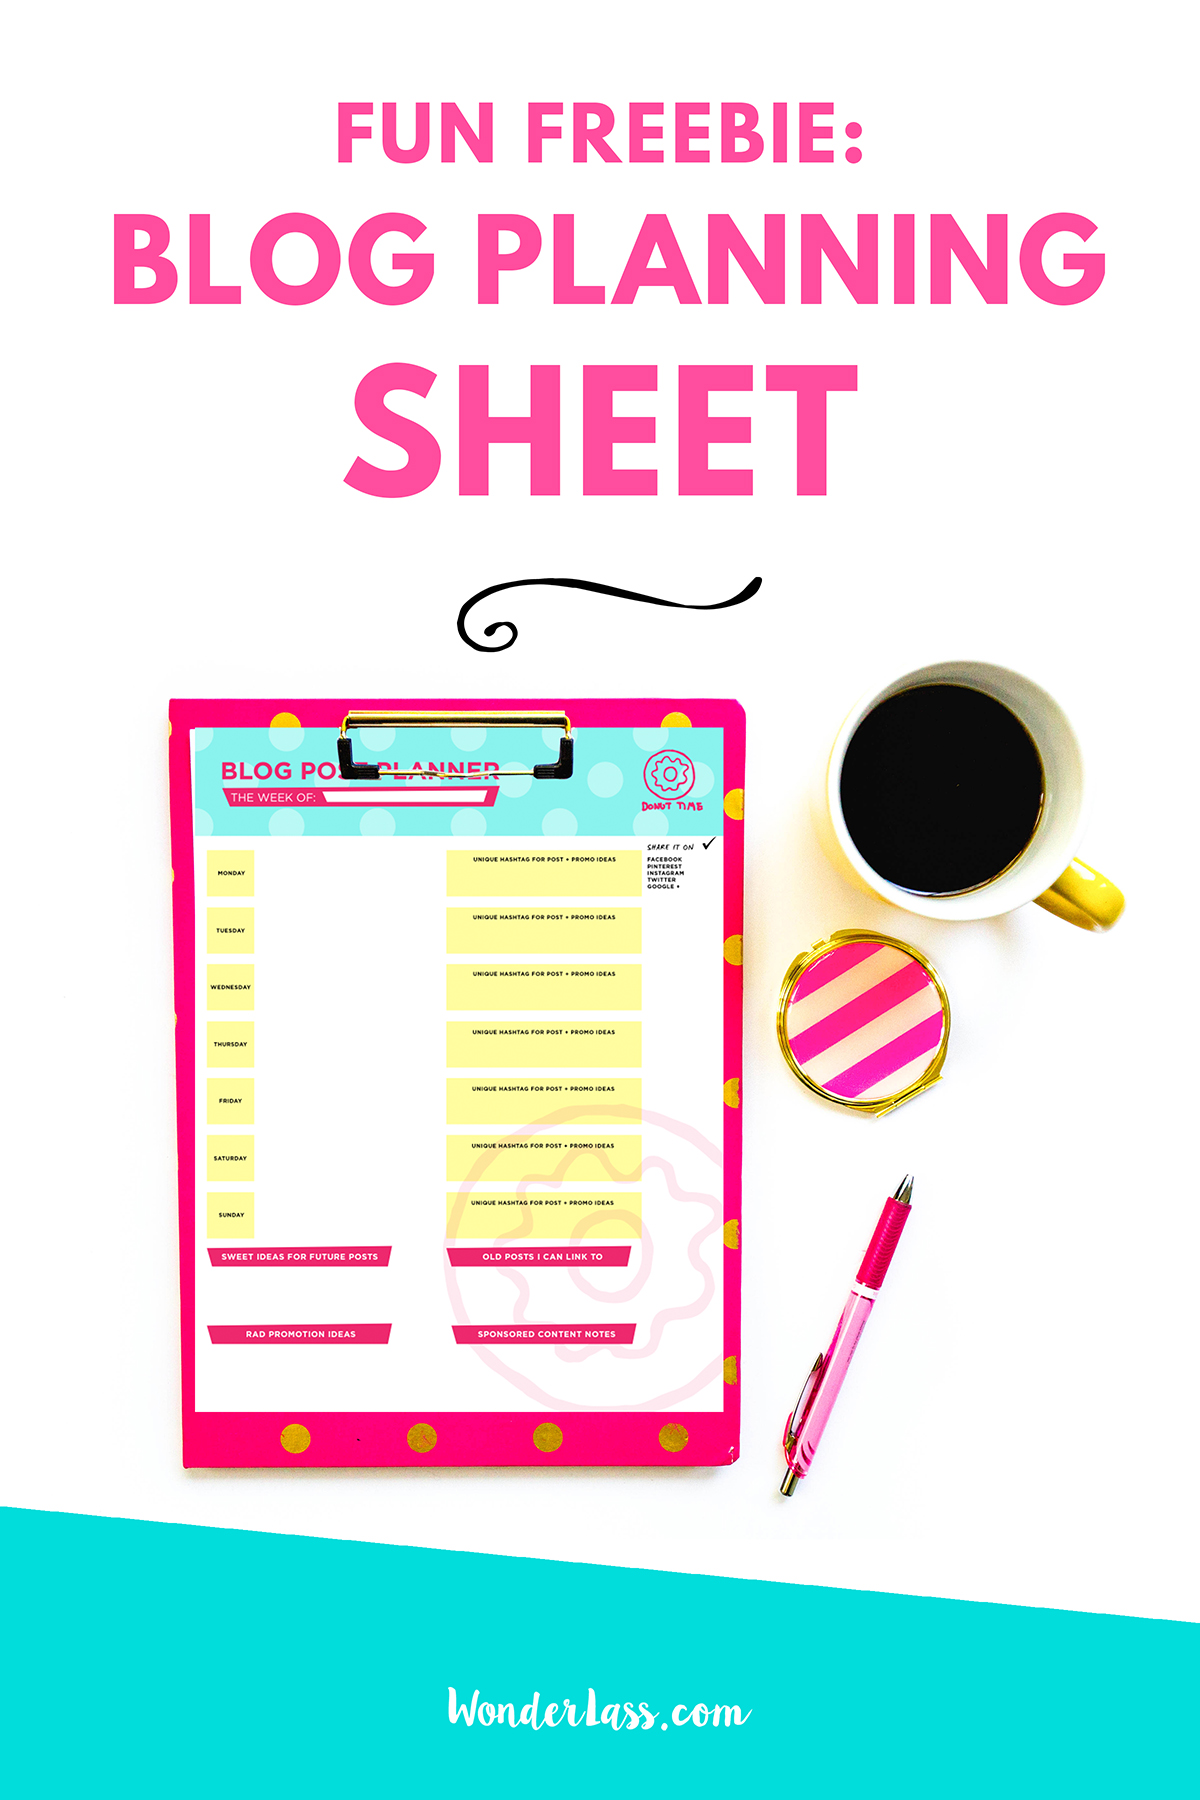 Fun Freebie: Blog Planning Sheet! | Learn how to plan the perfect blog post and epic content with this blog planning sheet. | Wonderlass